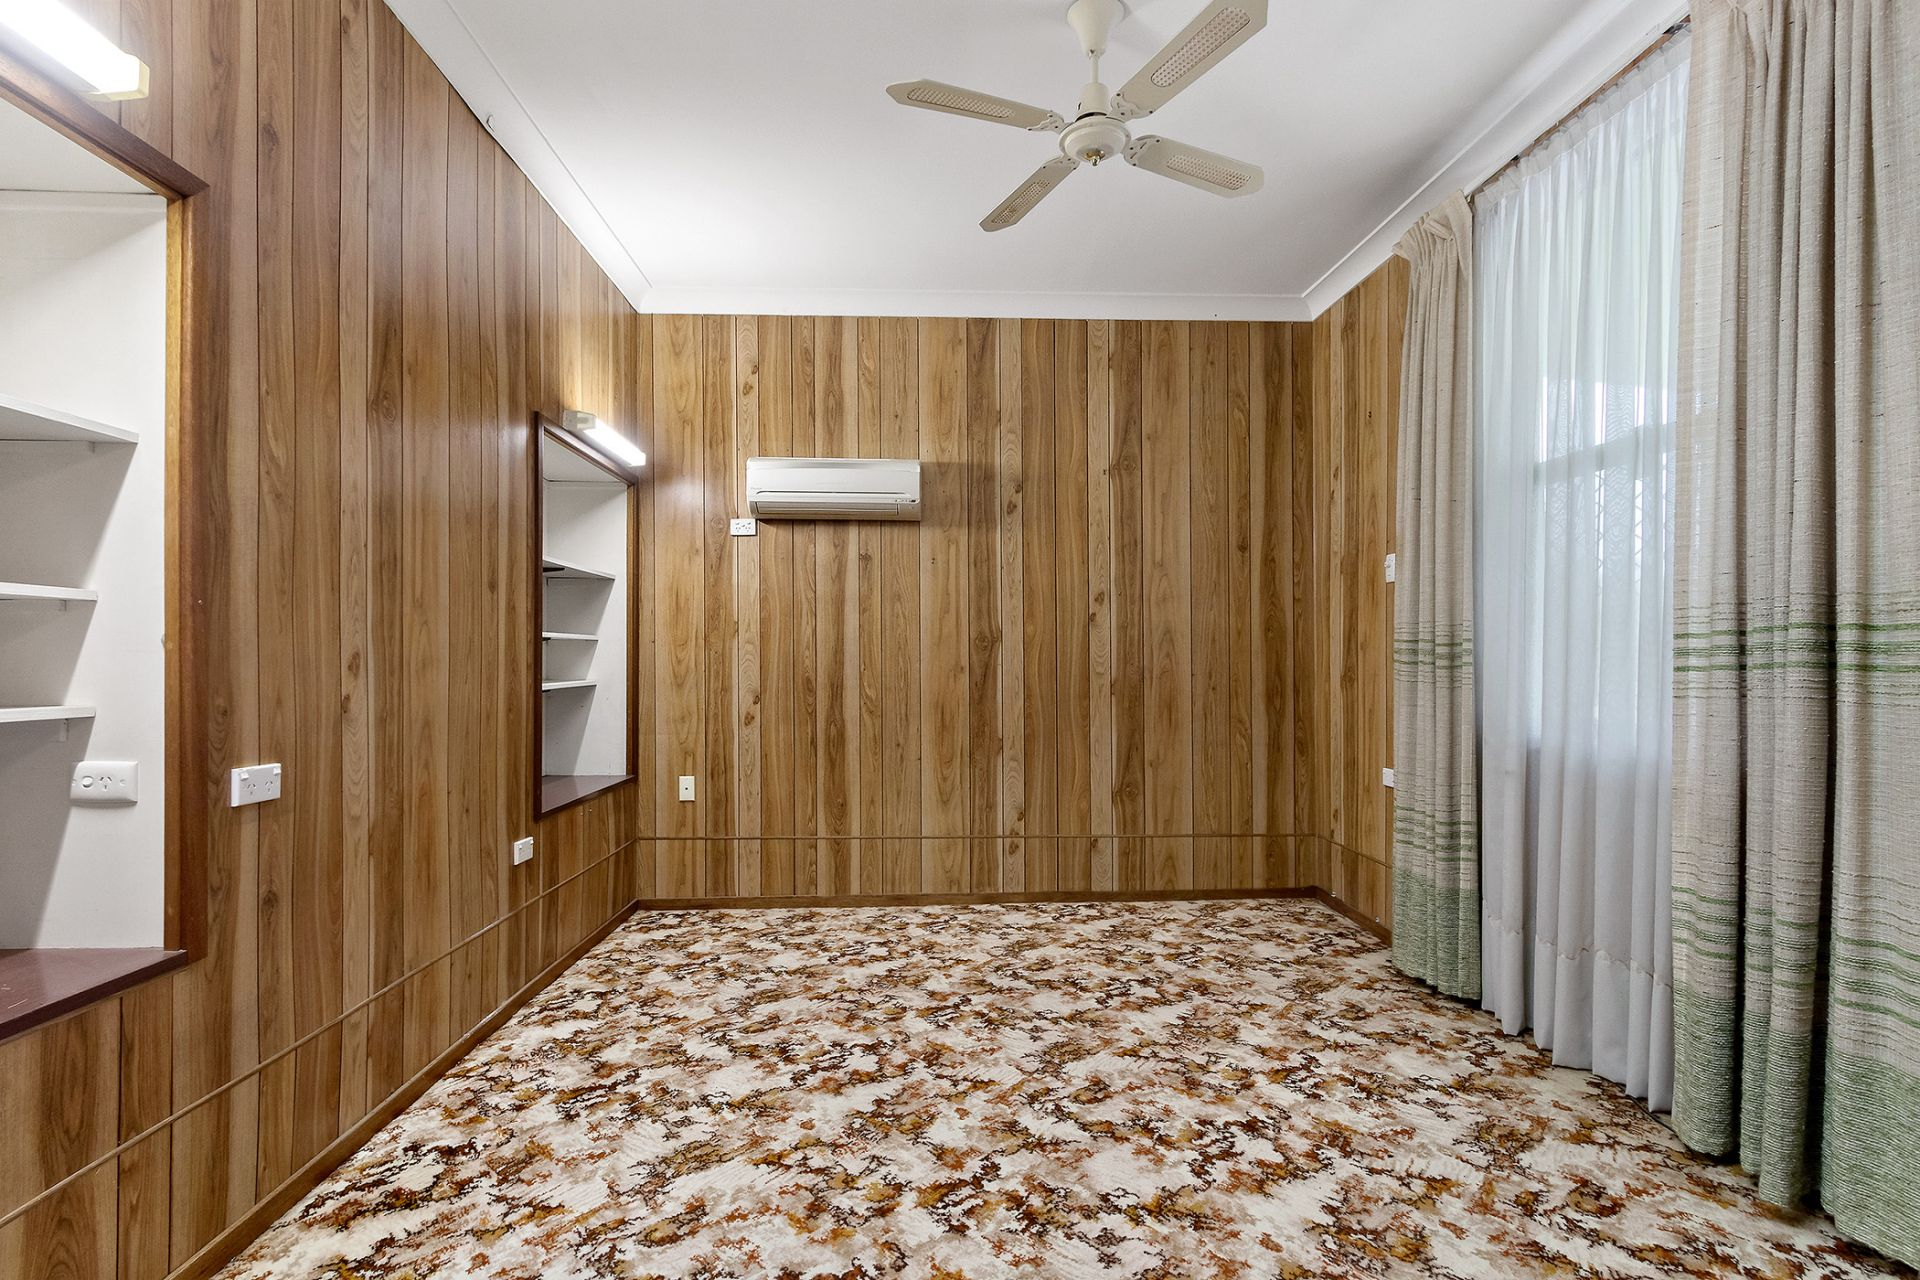 Refresh, renovate or invest in this original home